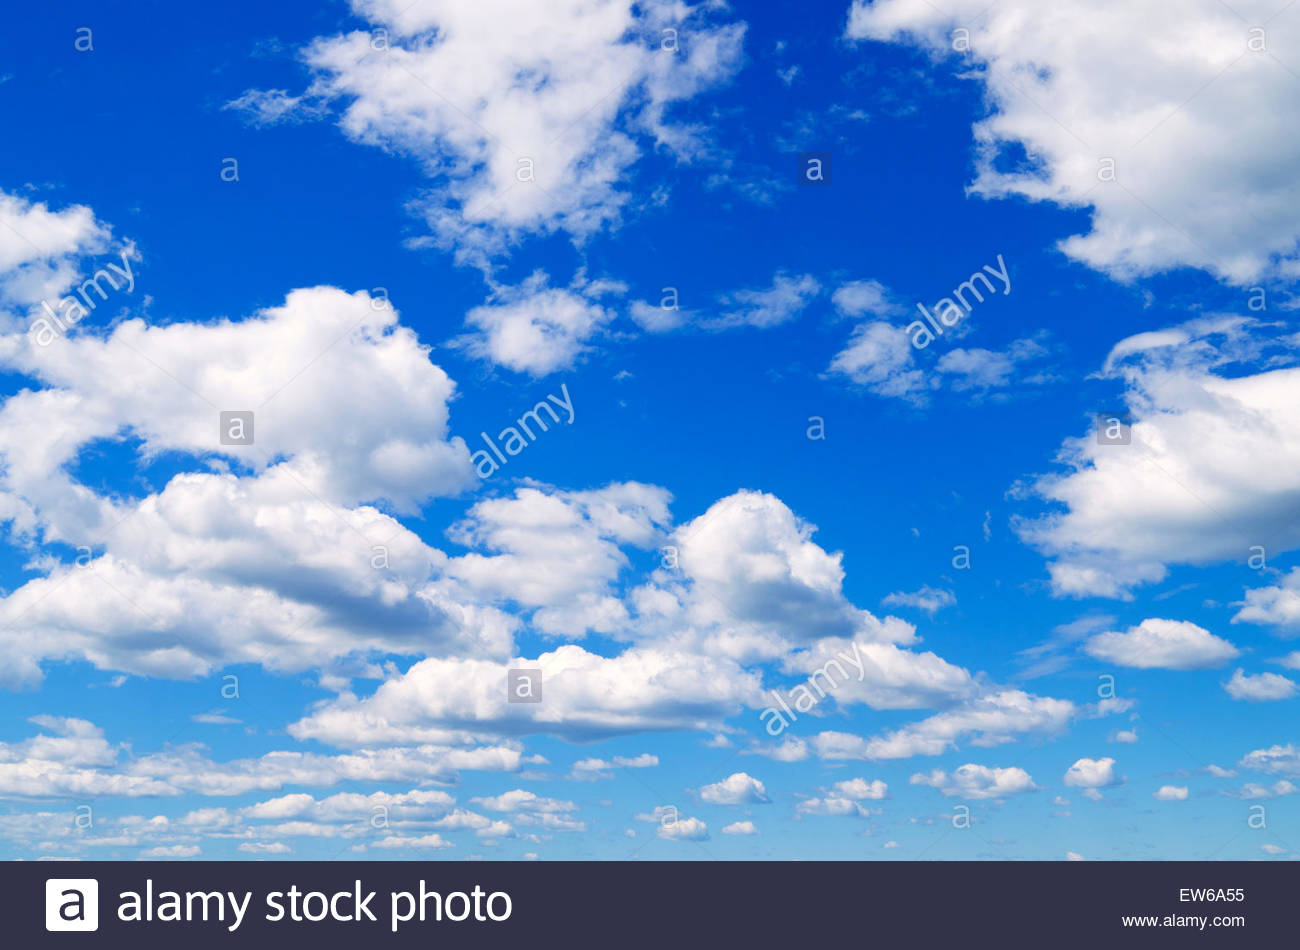 Blue sky with clouds for background. - Stock Image